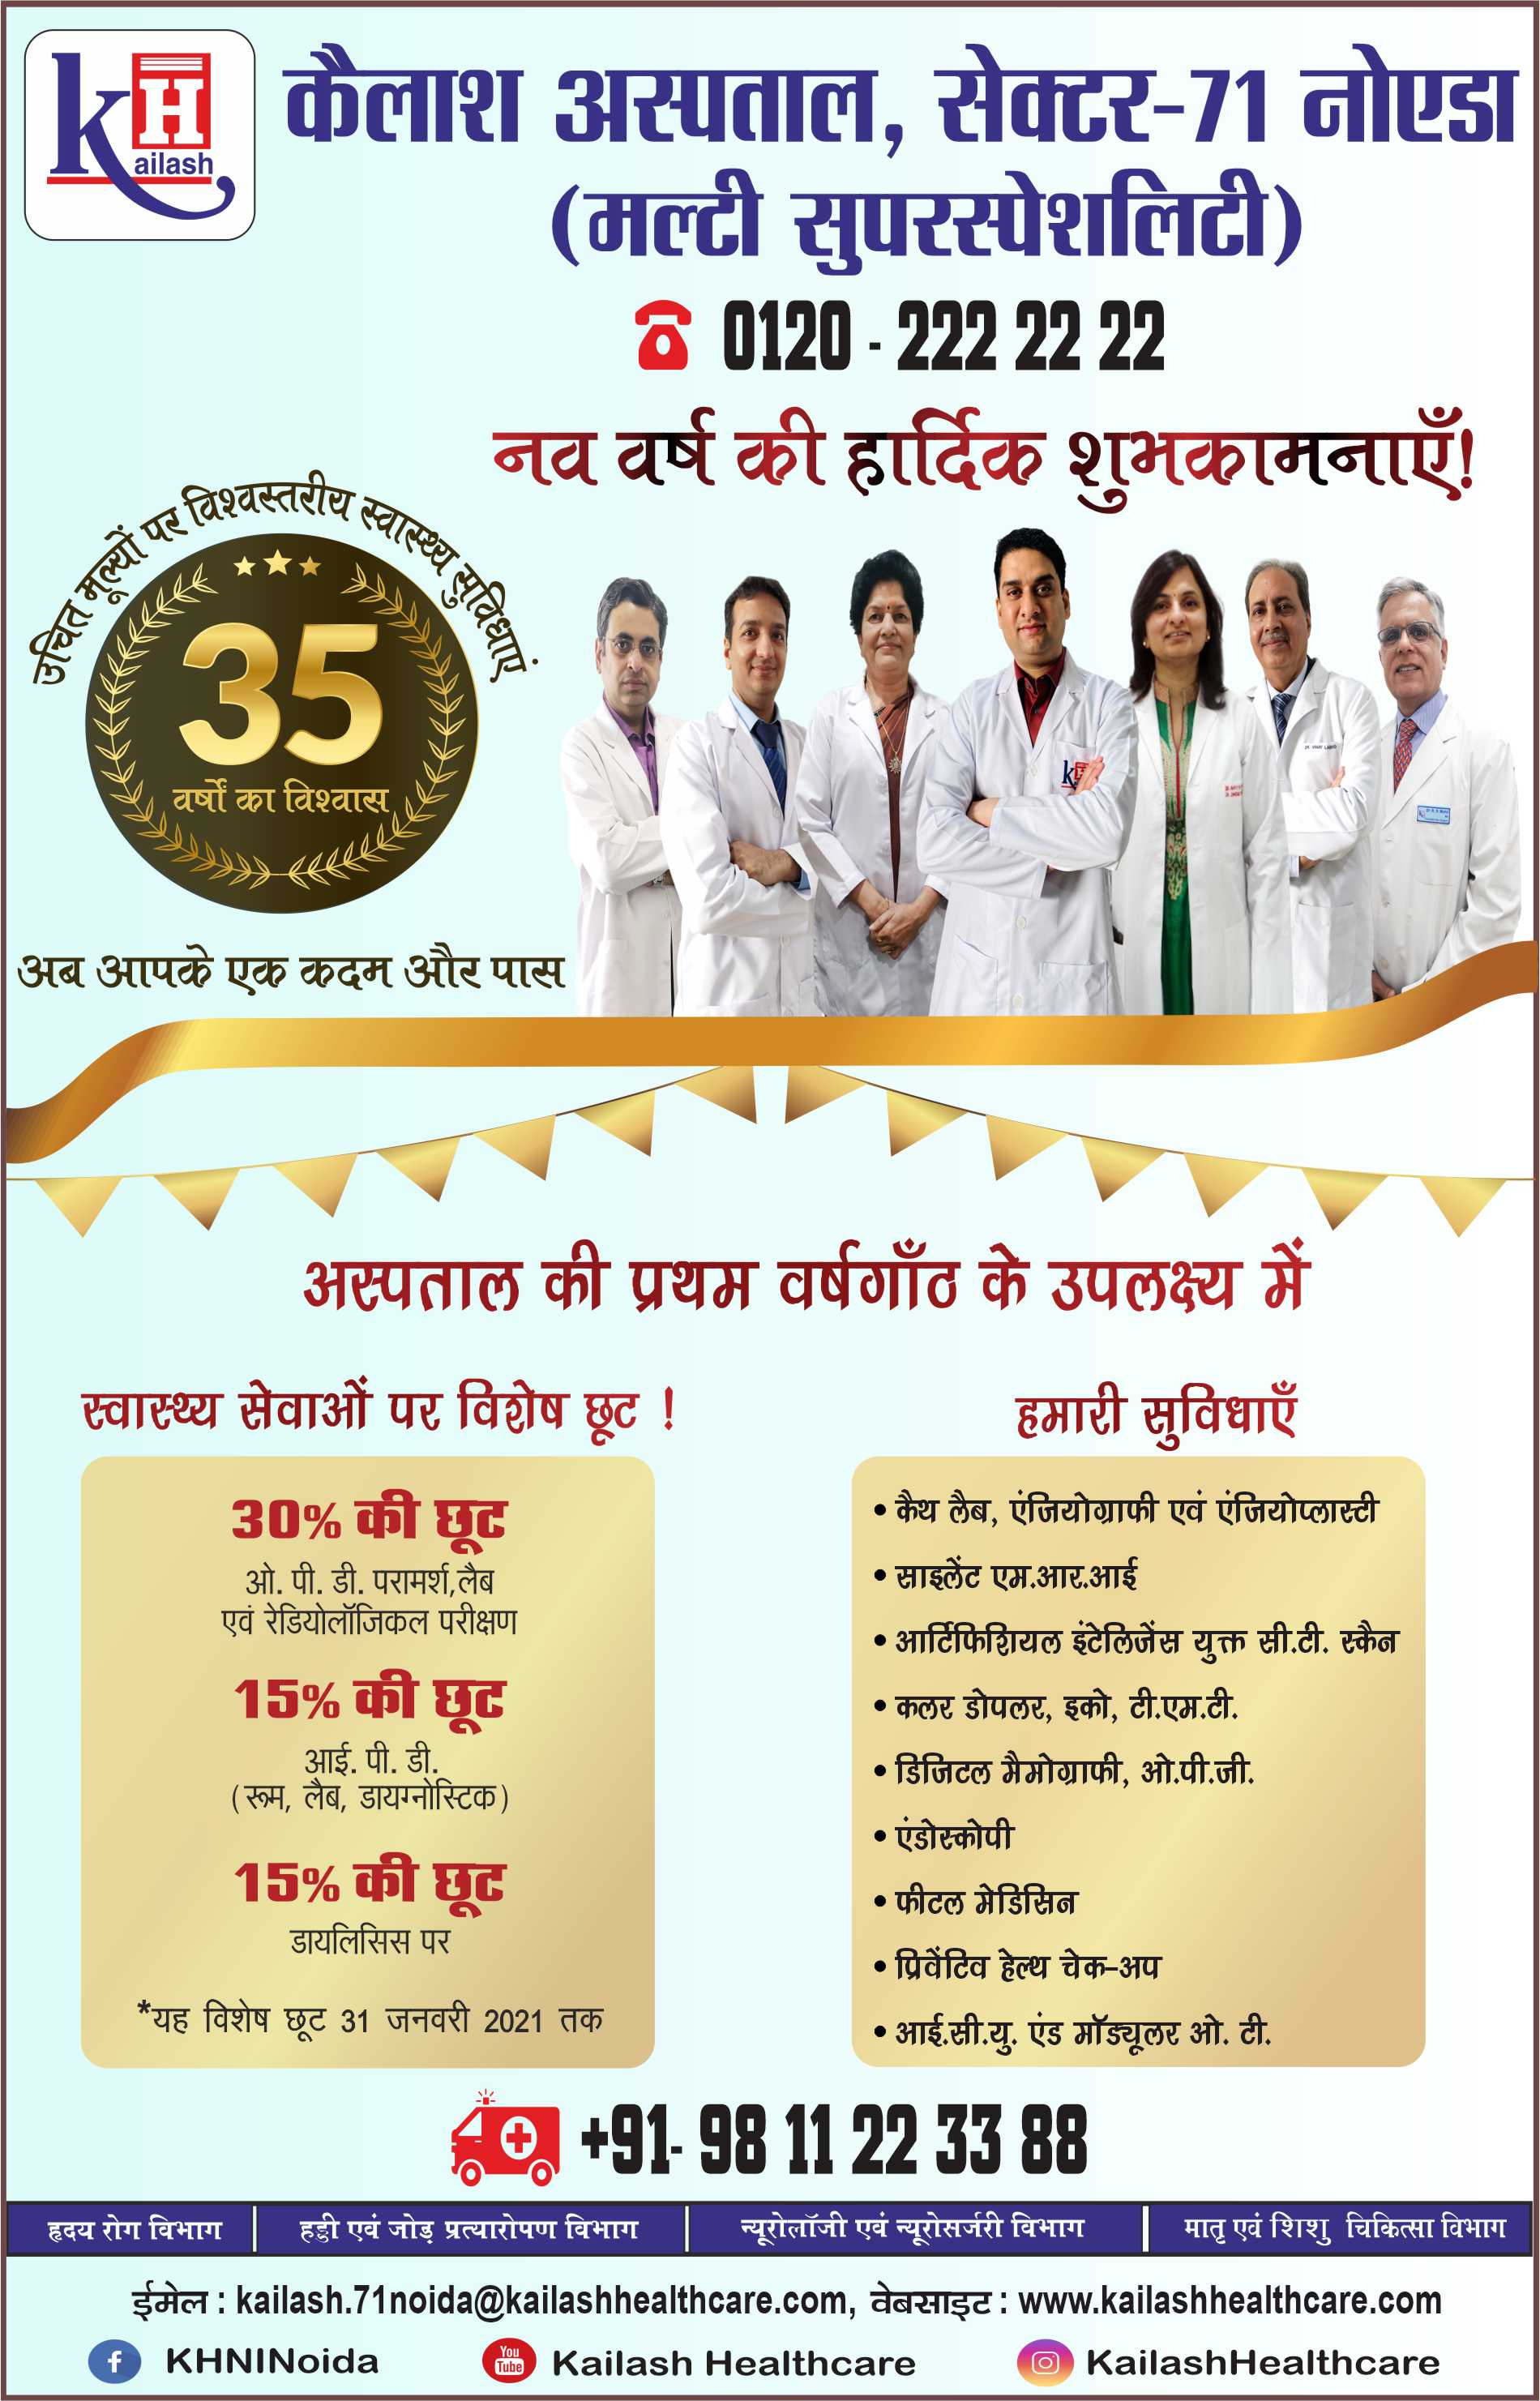 Kailash Hospital, Sector 71 Noida offers Discounts on it's 1st Anniversary.